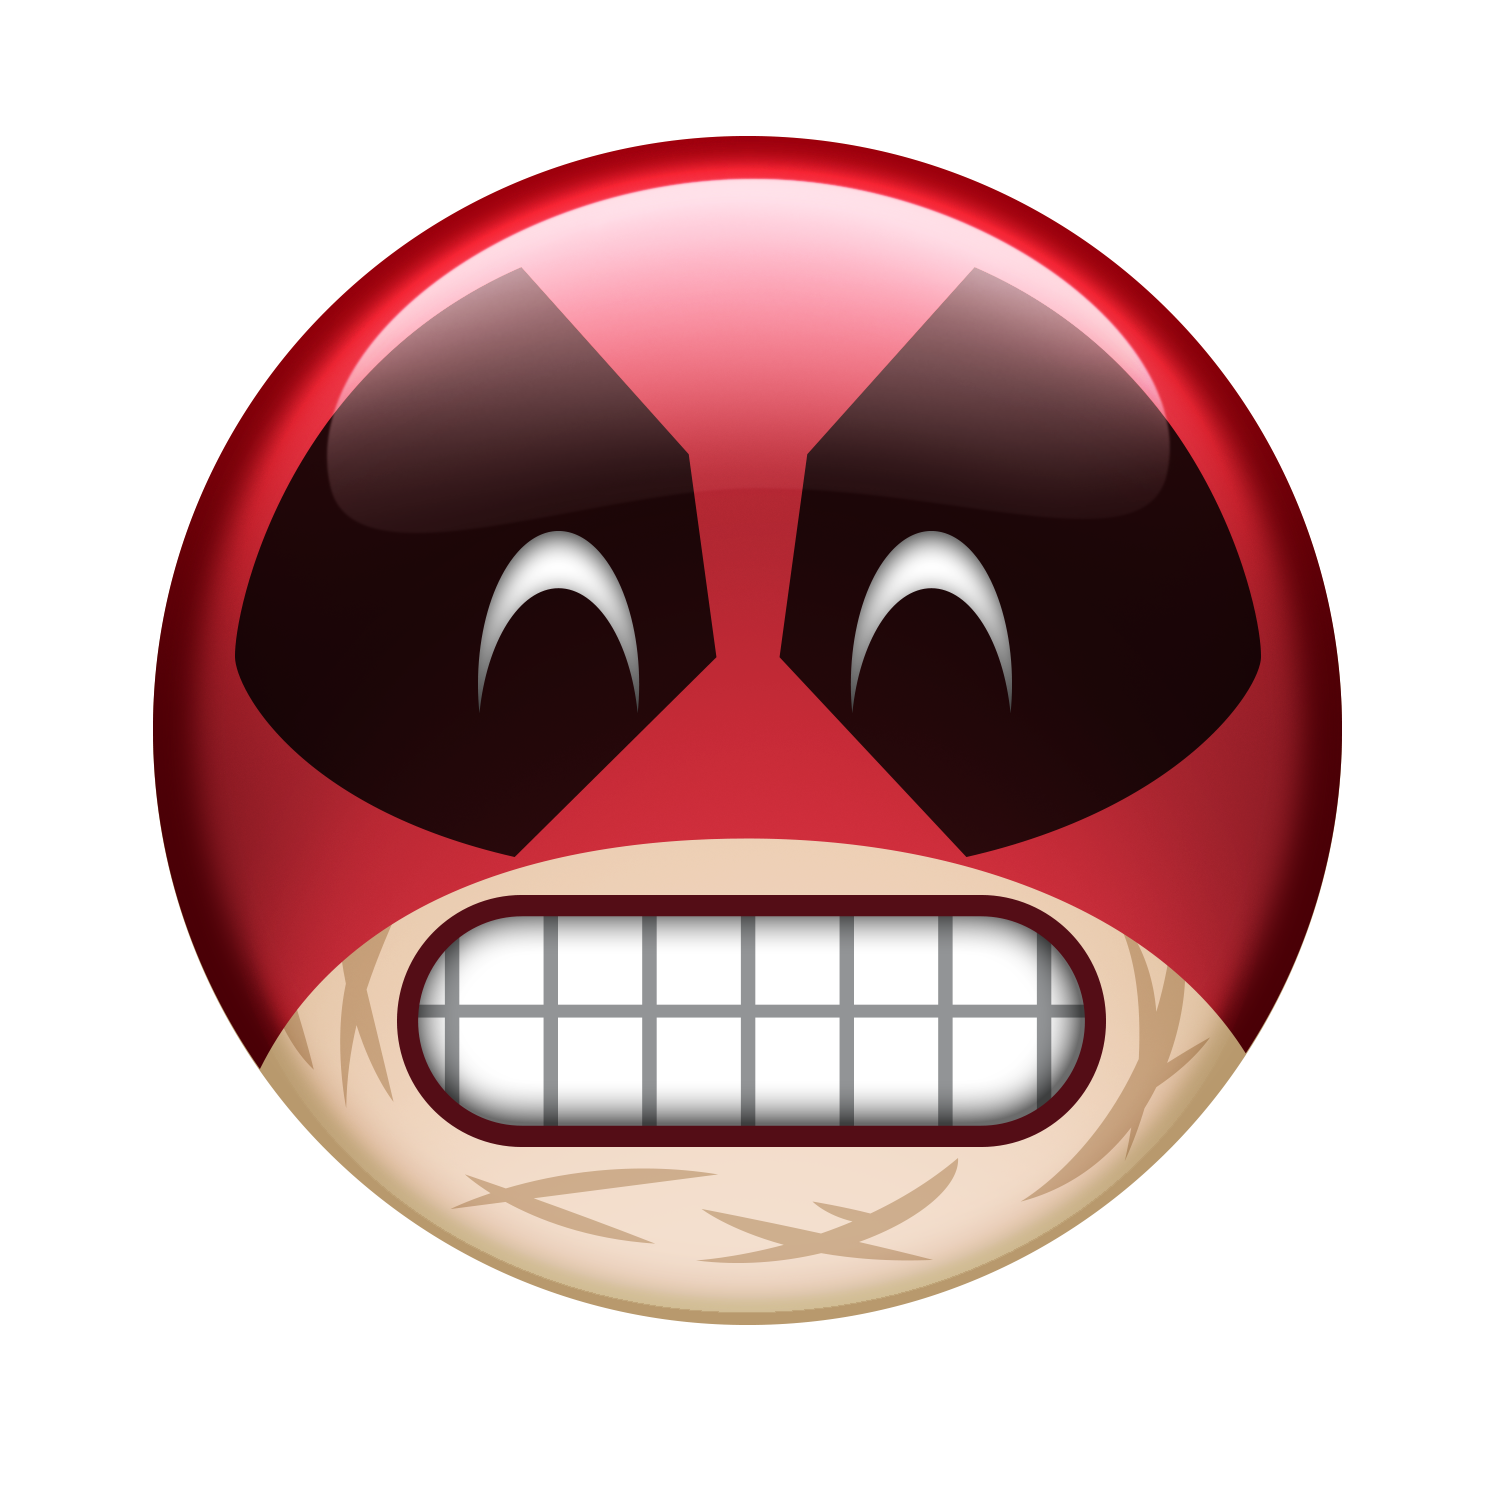 Smile Deadpool Mouth Film Emoji HD Image Free PNG PNG Image